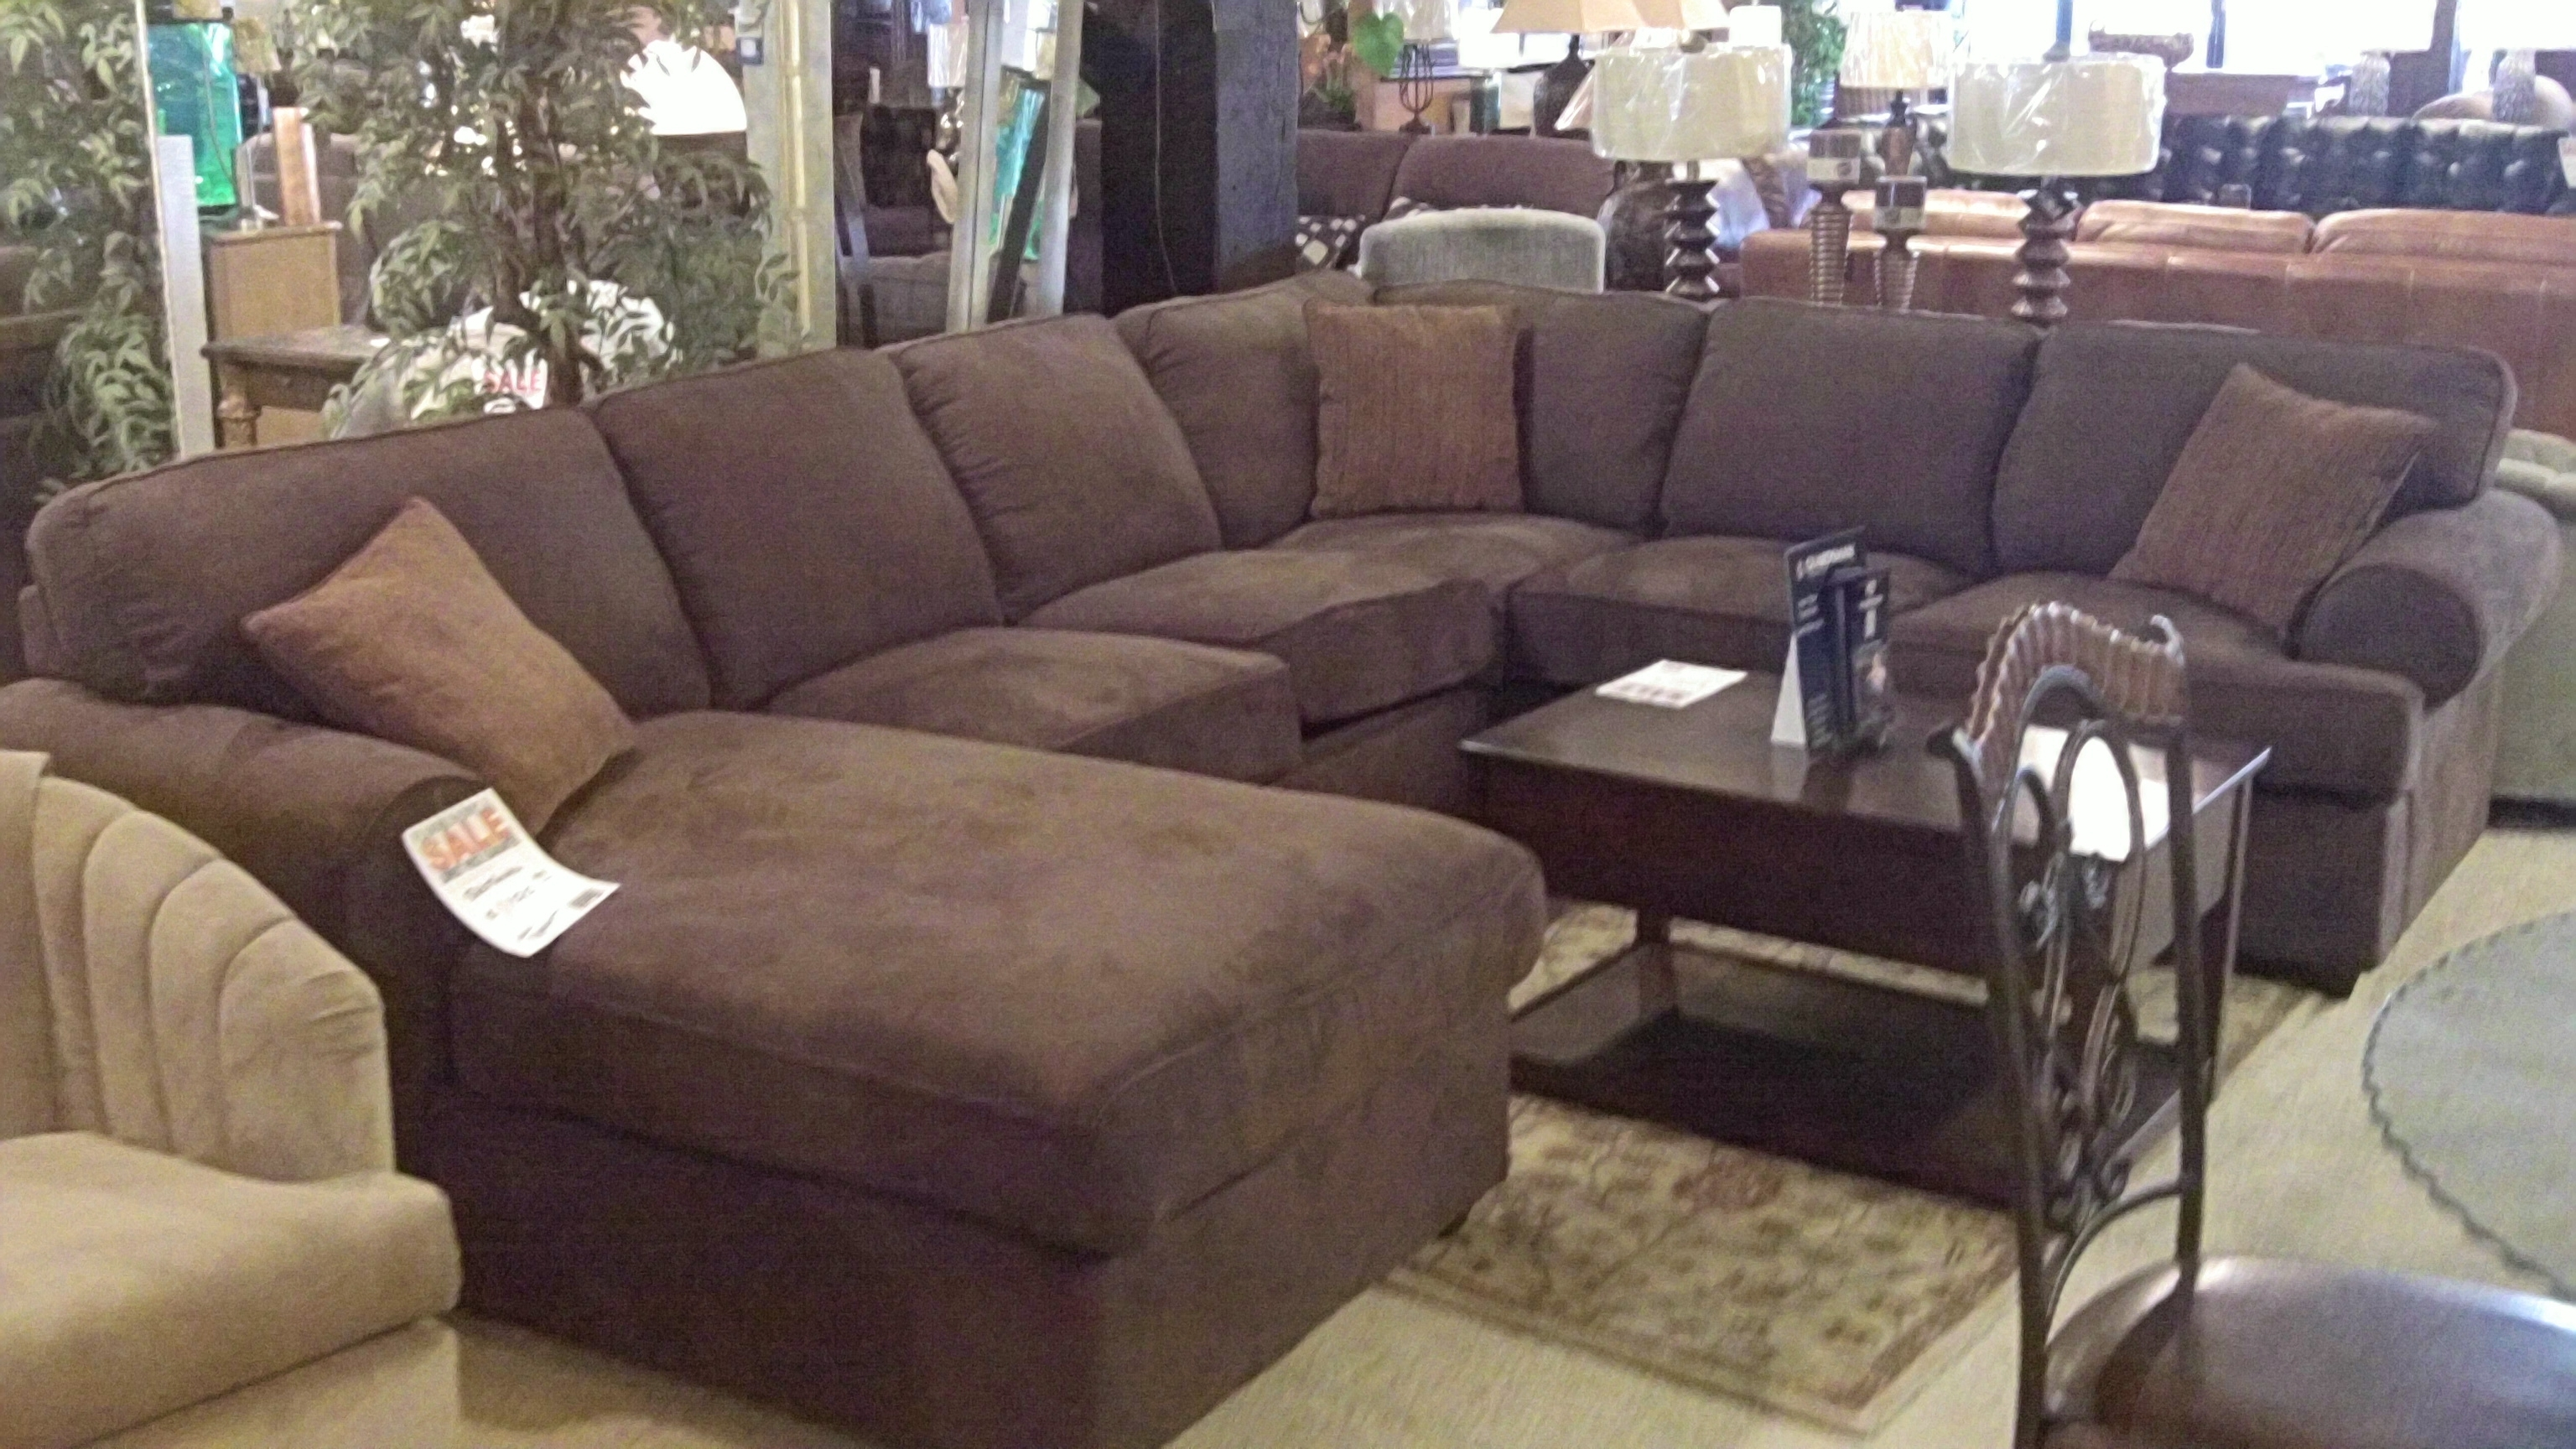 Elegant Large Sectional Sofas With Recliners 94 In Curved In Curved Sectional Sofa With Recliner (#7 of 12)